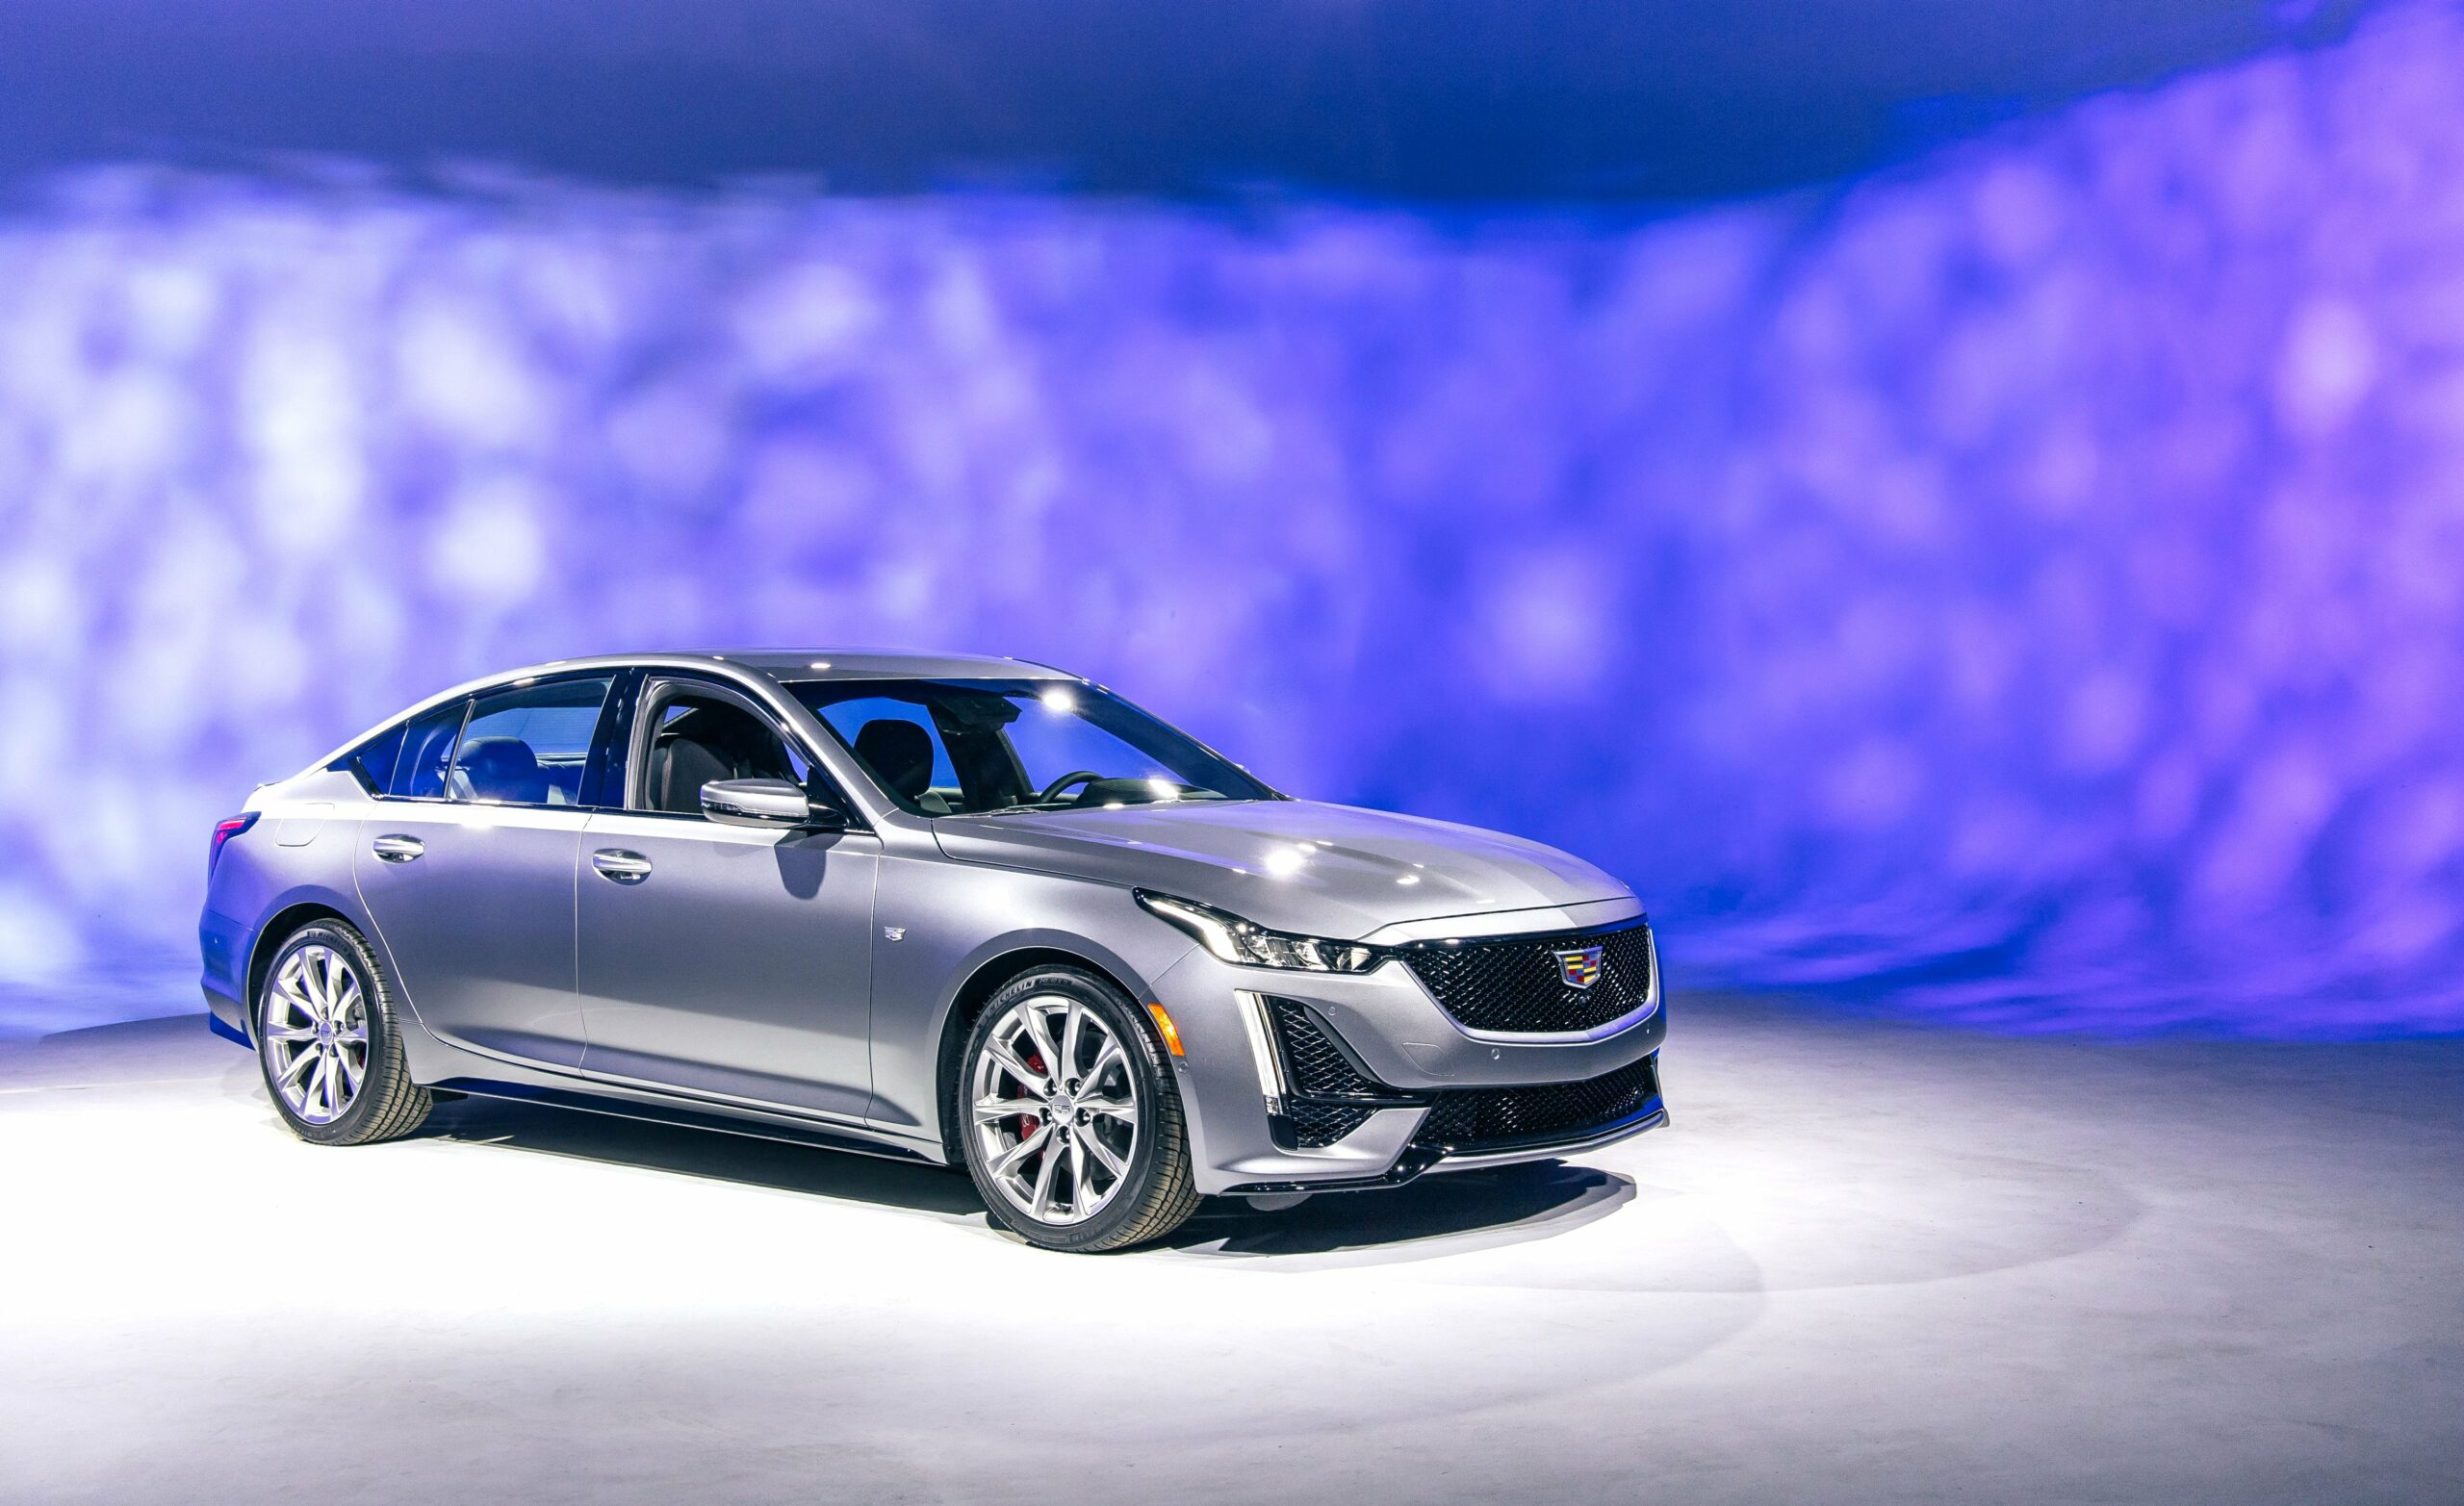 cadillac ats 2020 release date Concept and Review